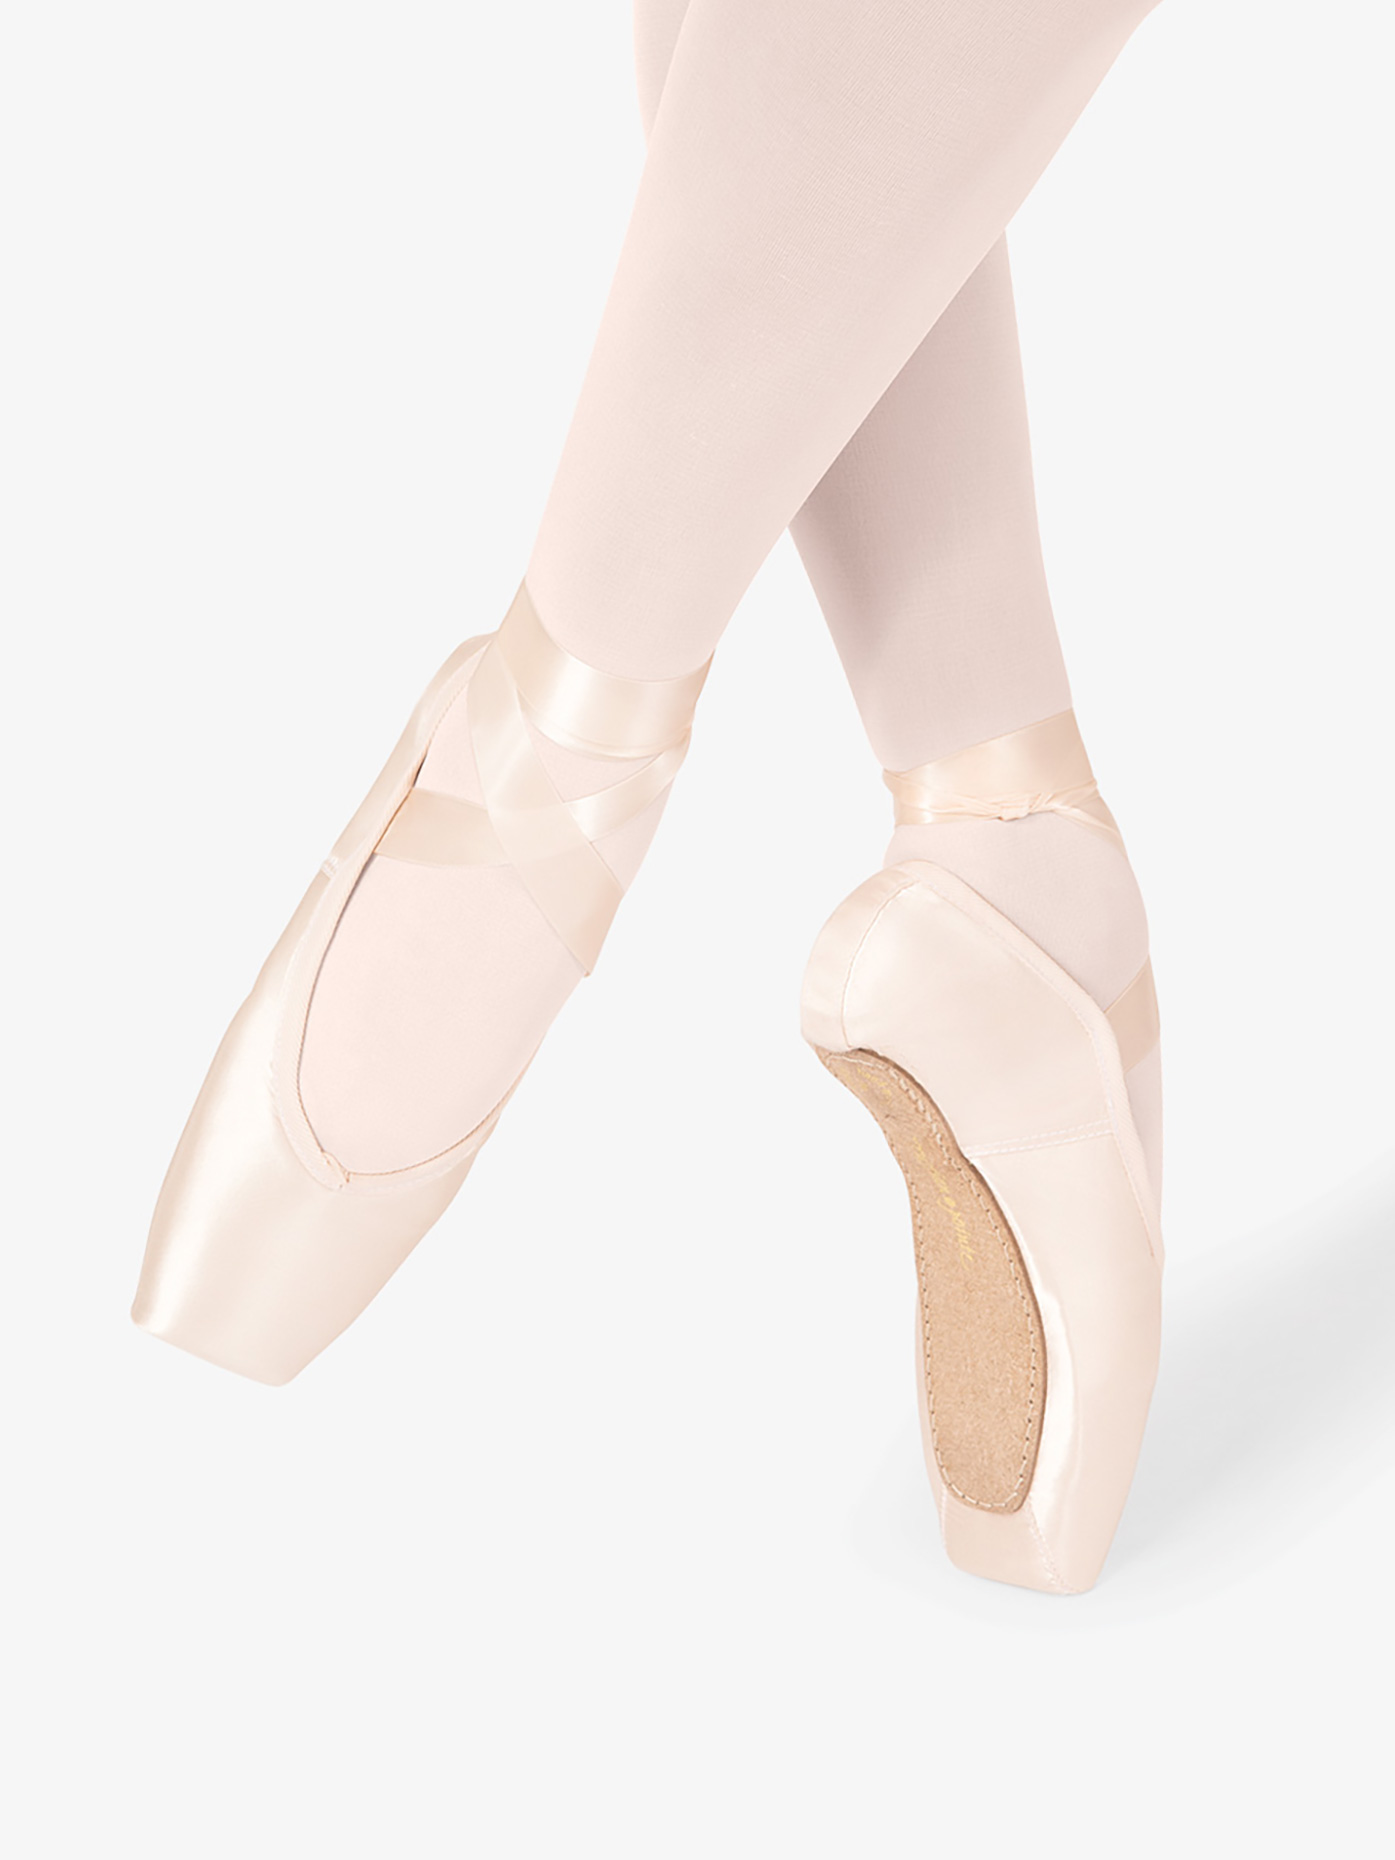 Pointe Shoes - New Mexico Dancewear 5963da993b